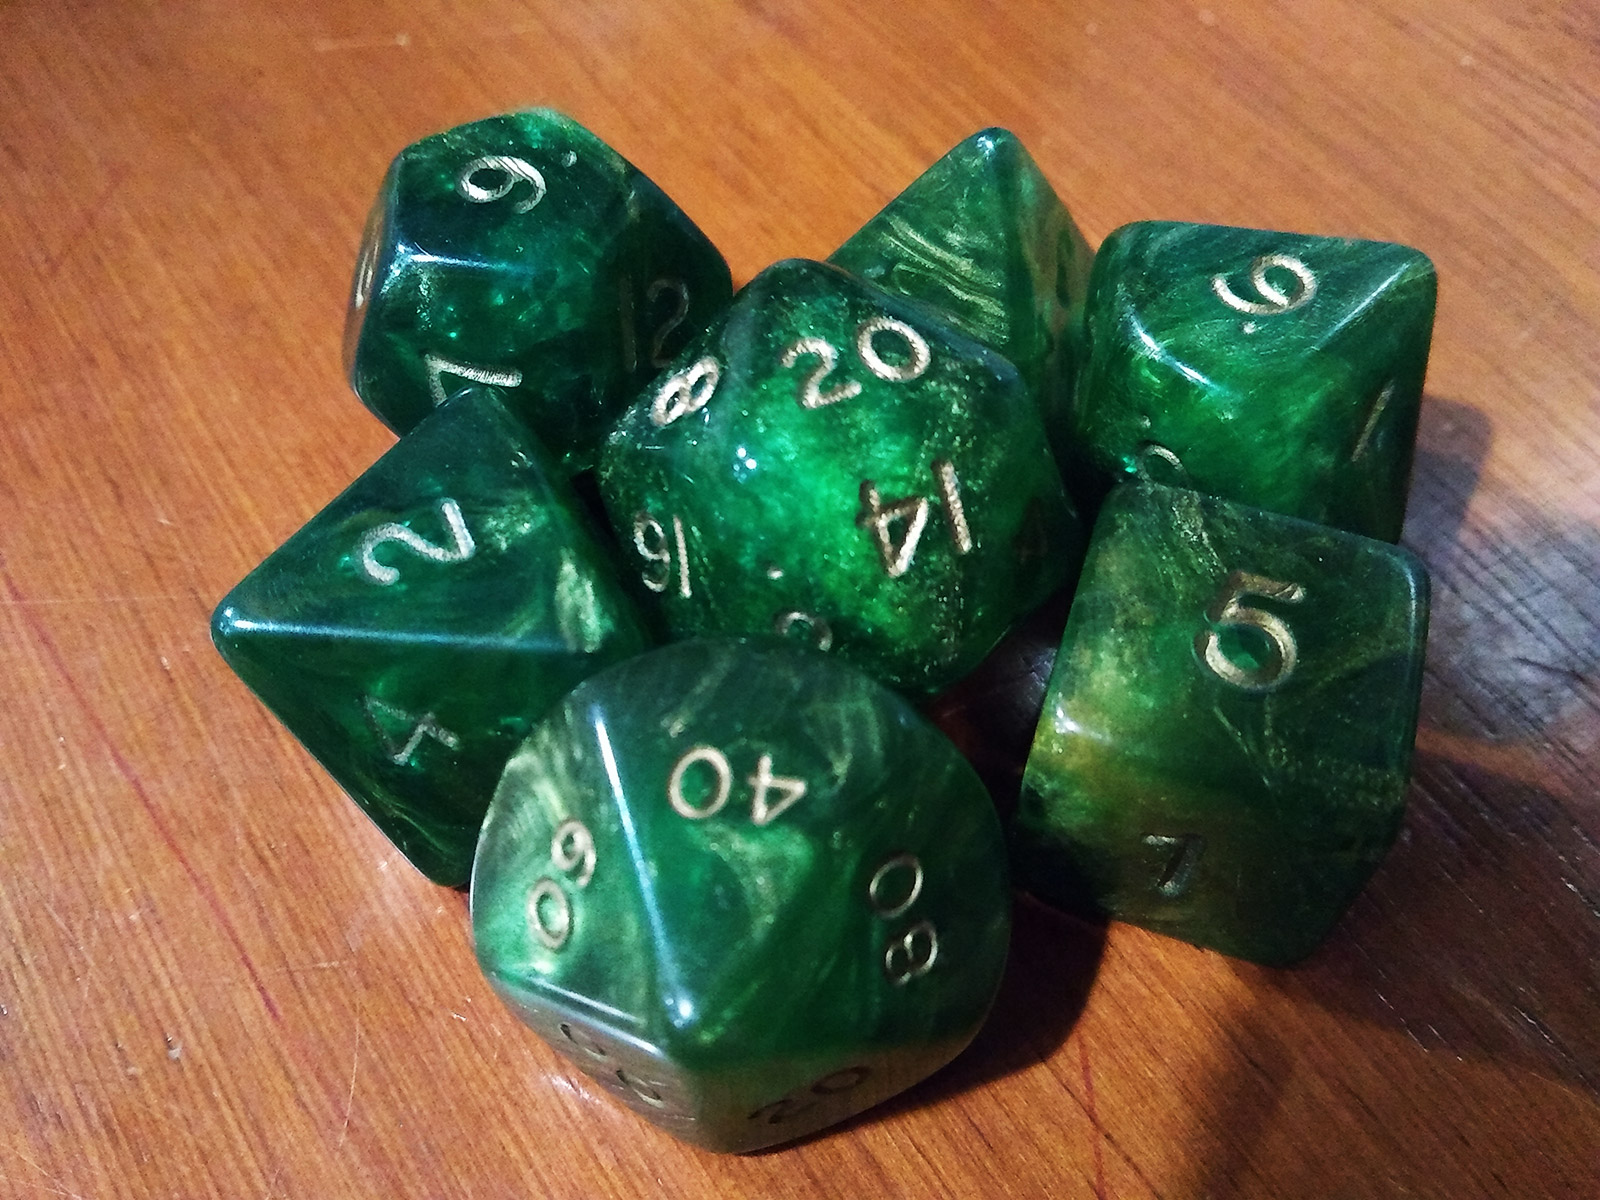 dnd selfie first dice set